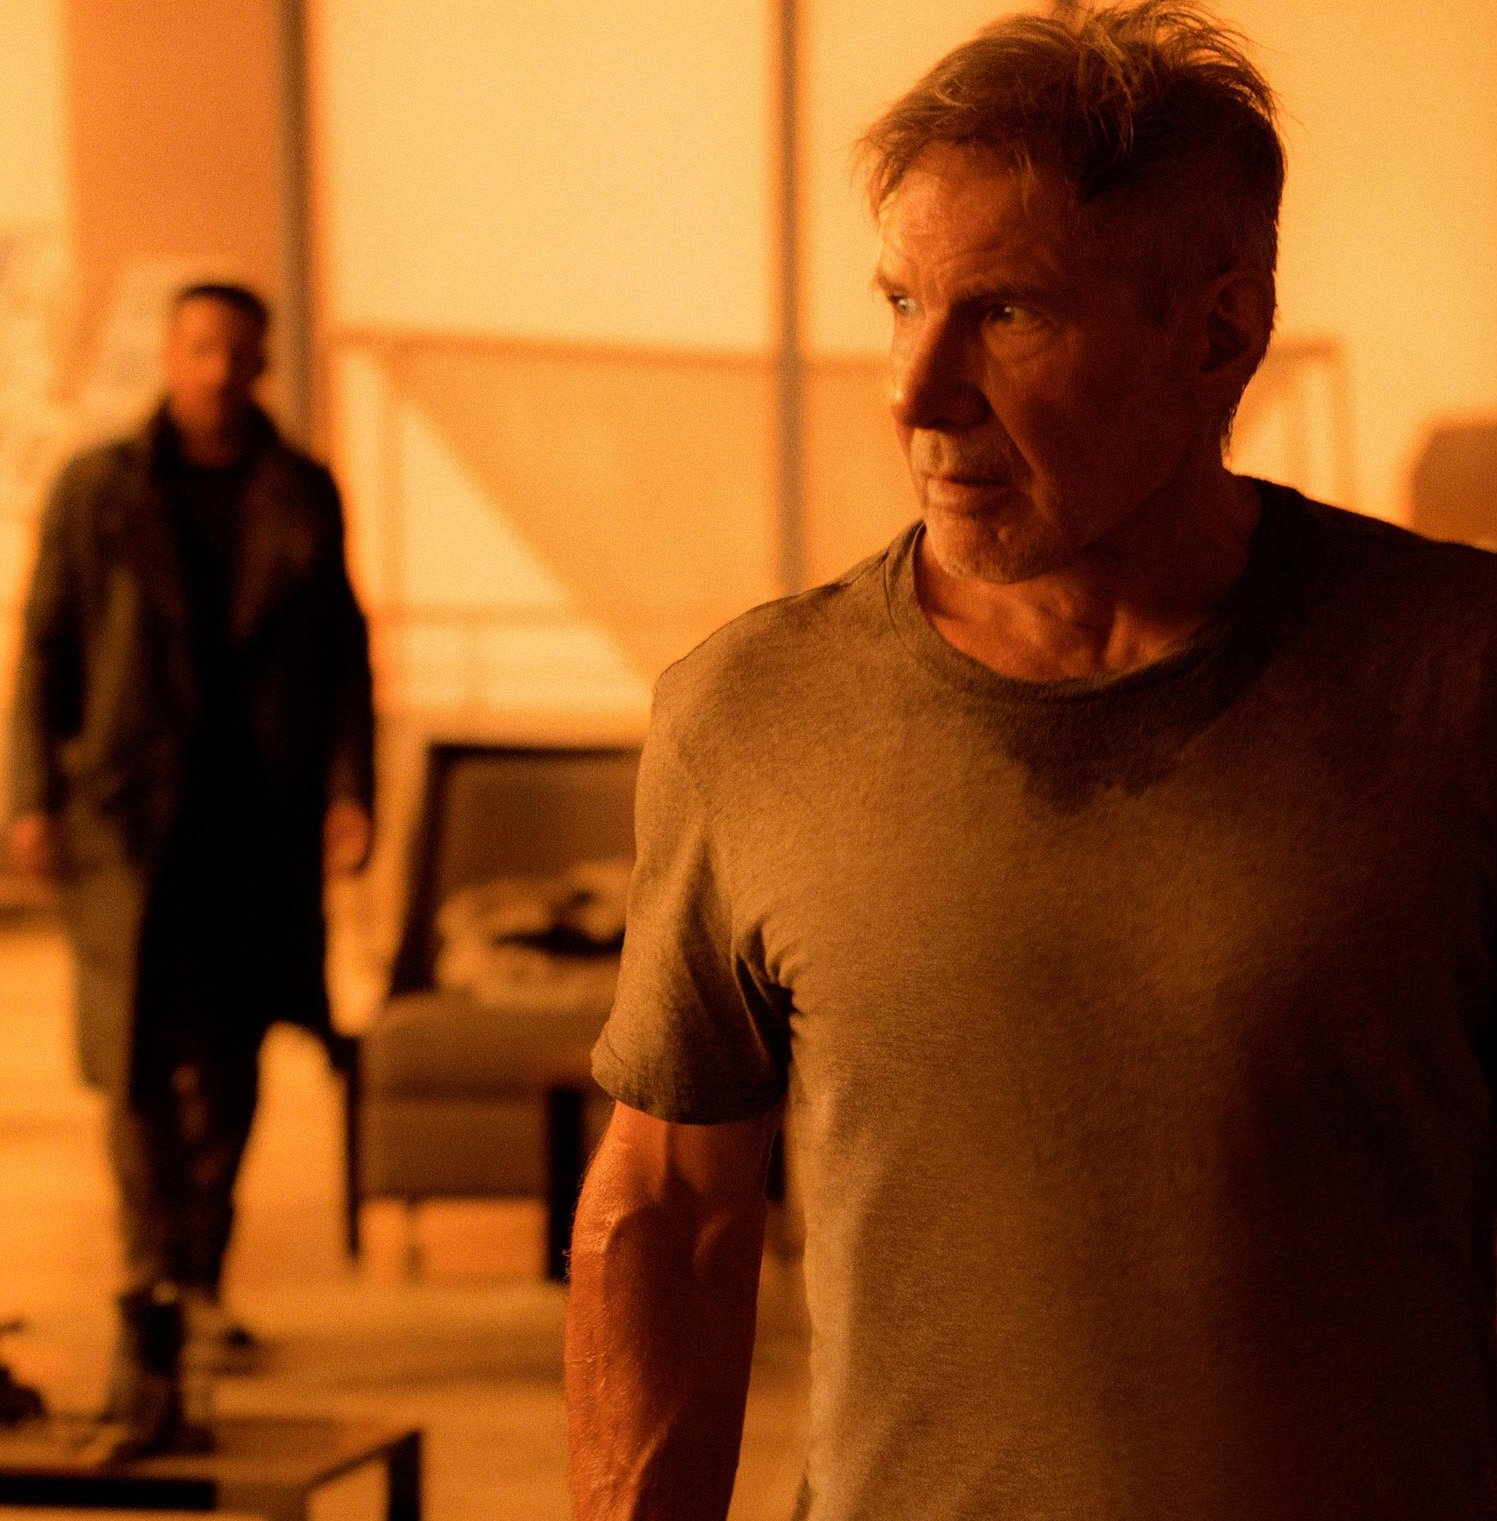 Blade Runner 2049 Movie Images 4 e1494255943372 10 Long-Delayed Sequels That Were Worth The Wait (And 10 That Definitely Weren't)